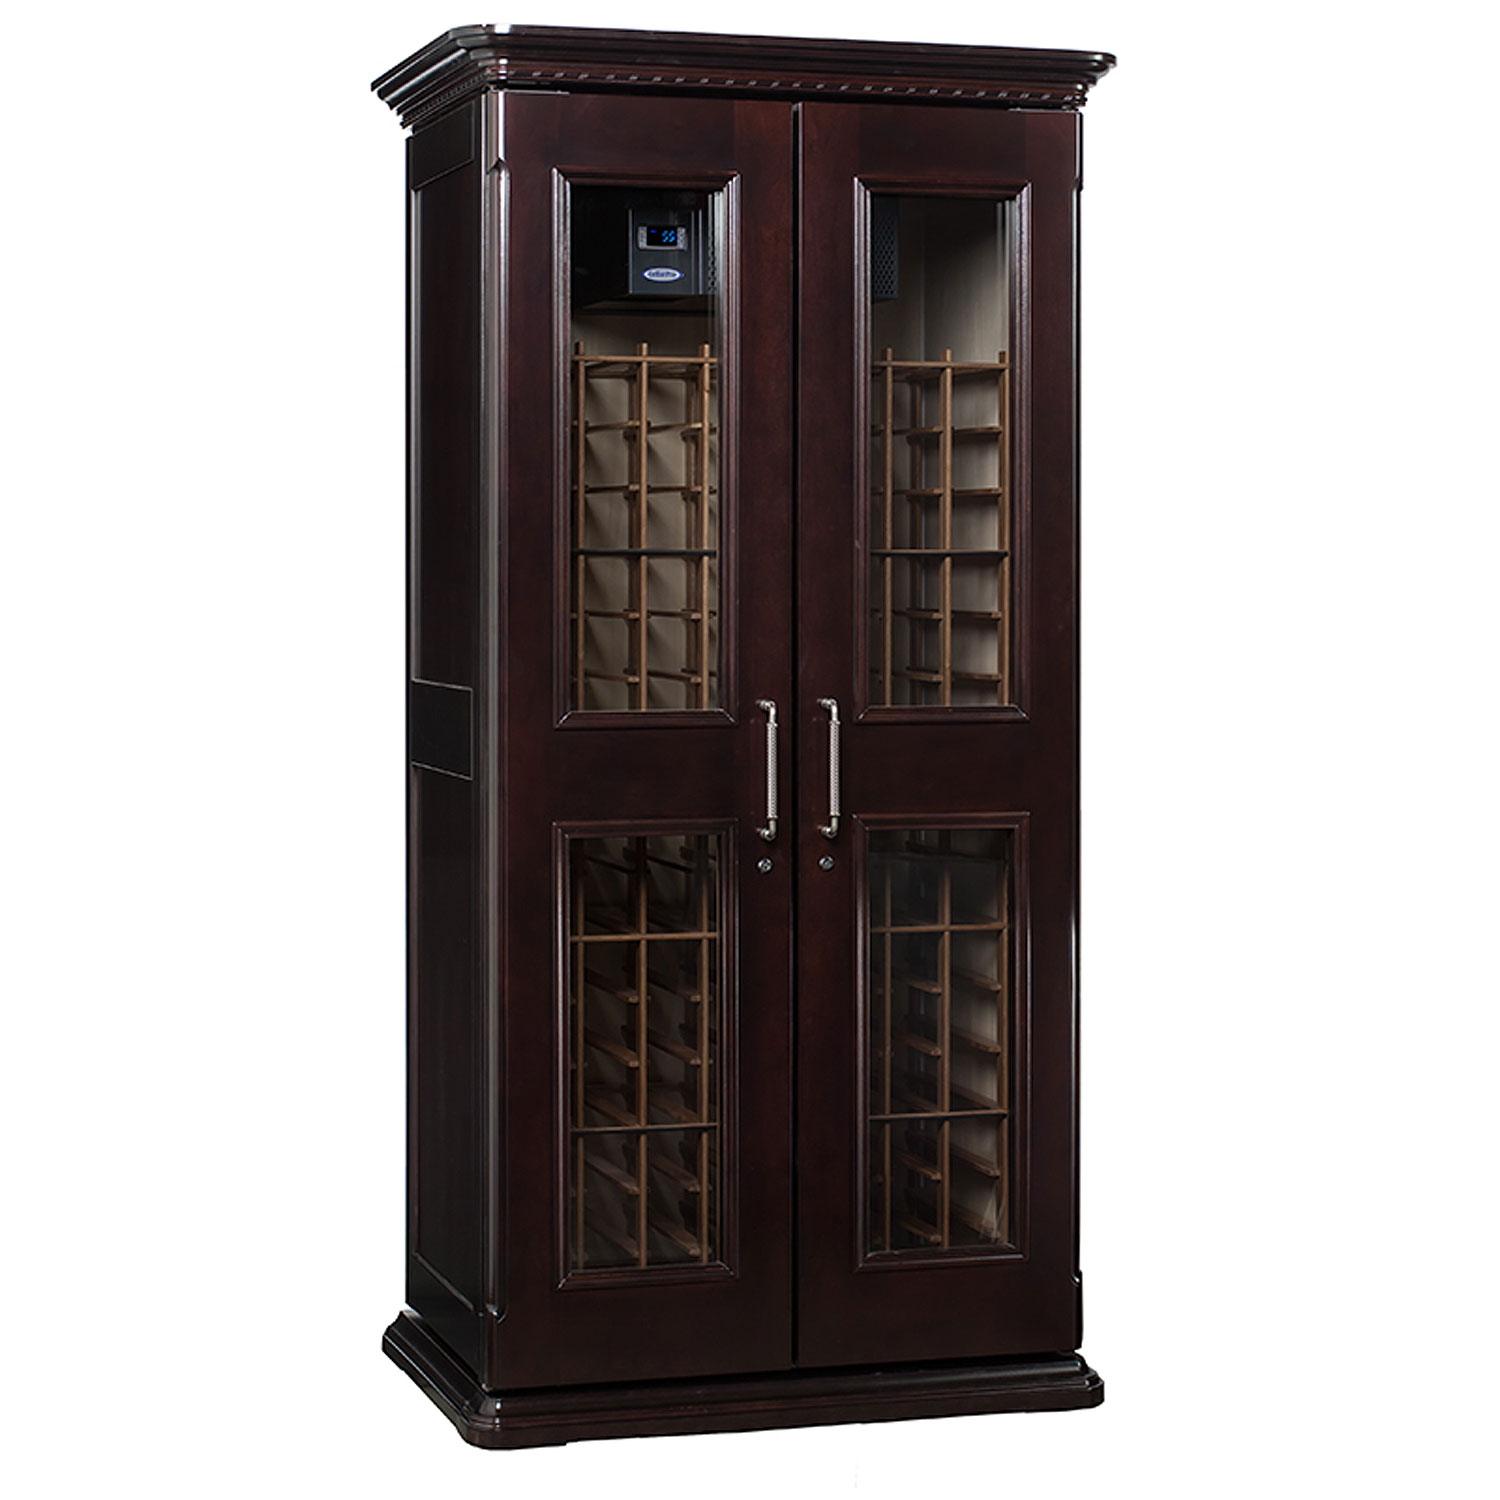 Le Cache European Country Euro 2400 Wine Cellar Cabinet